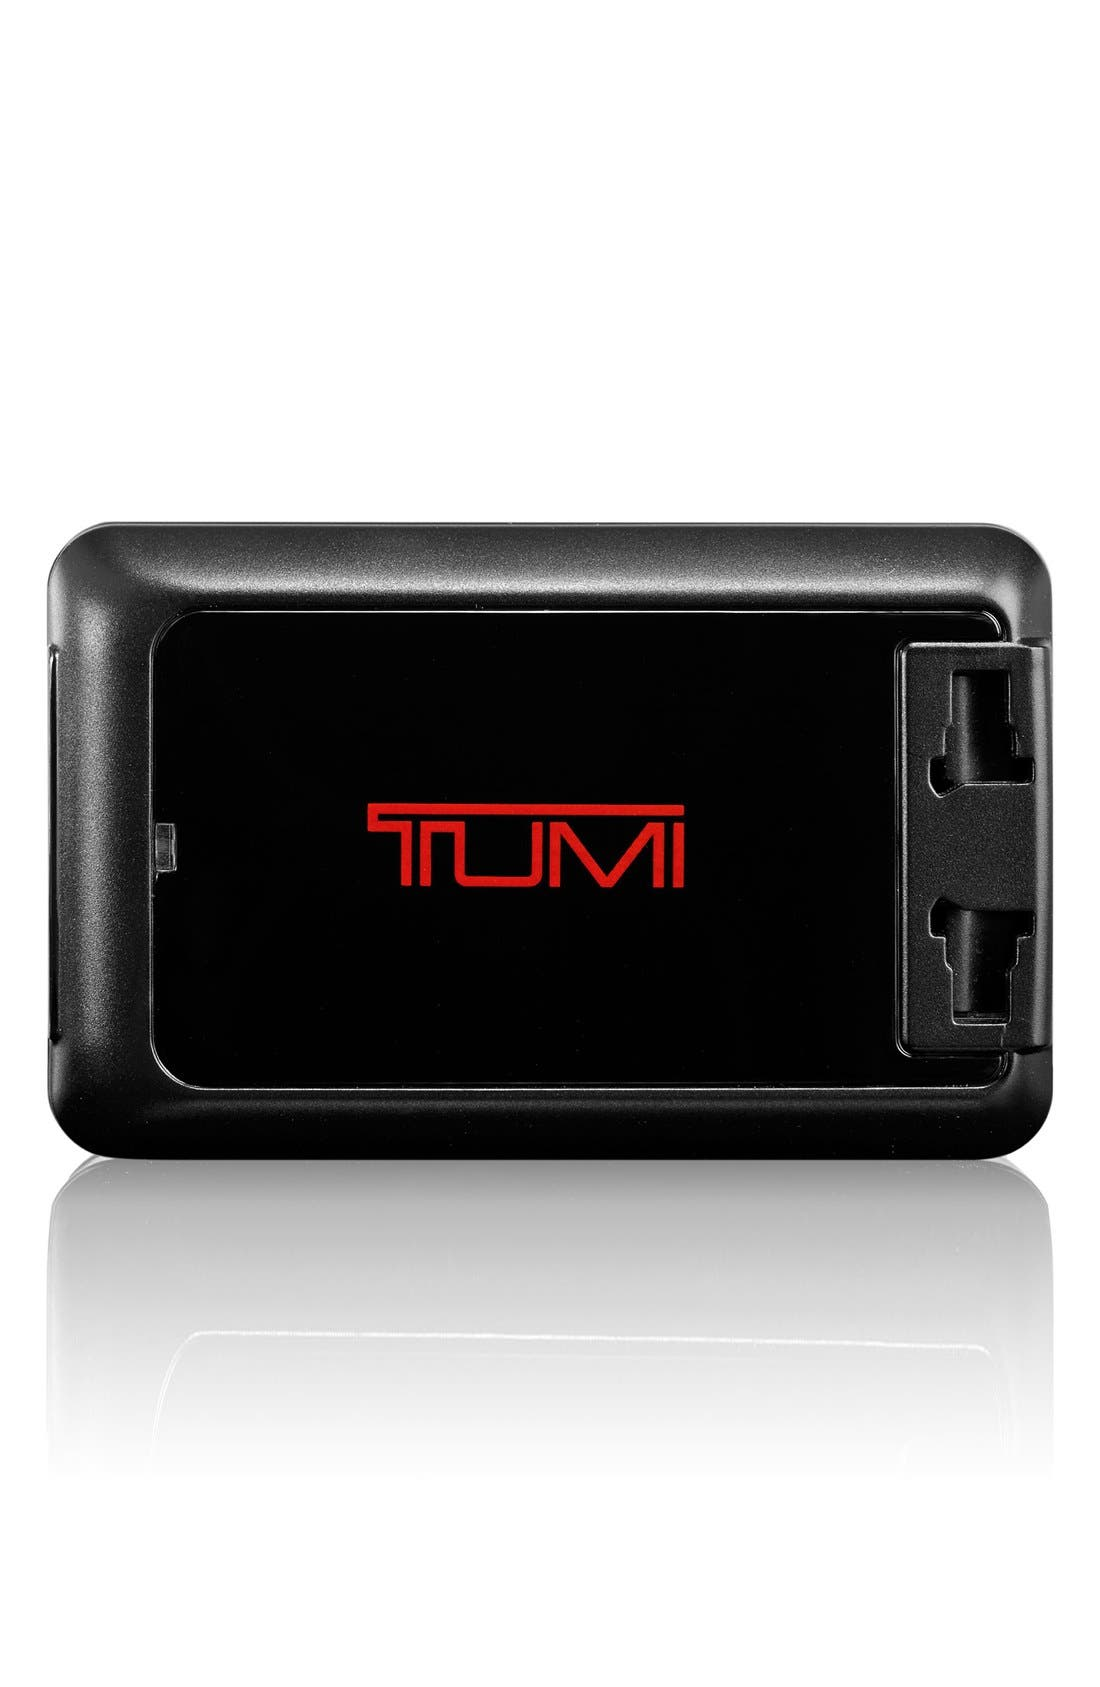 TUMI 4 Port USB Travel Adaptor